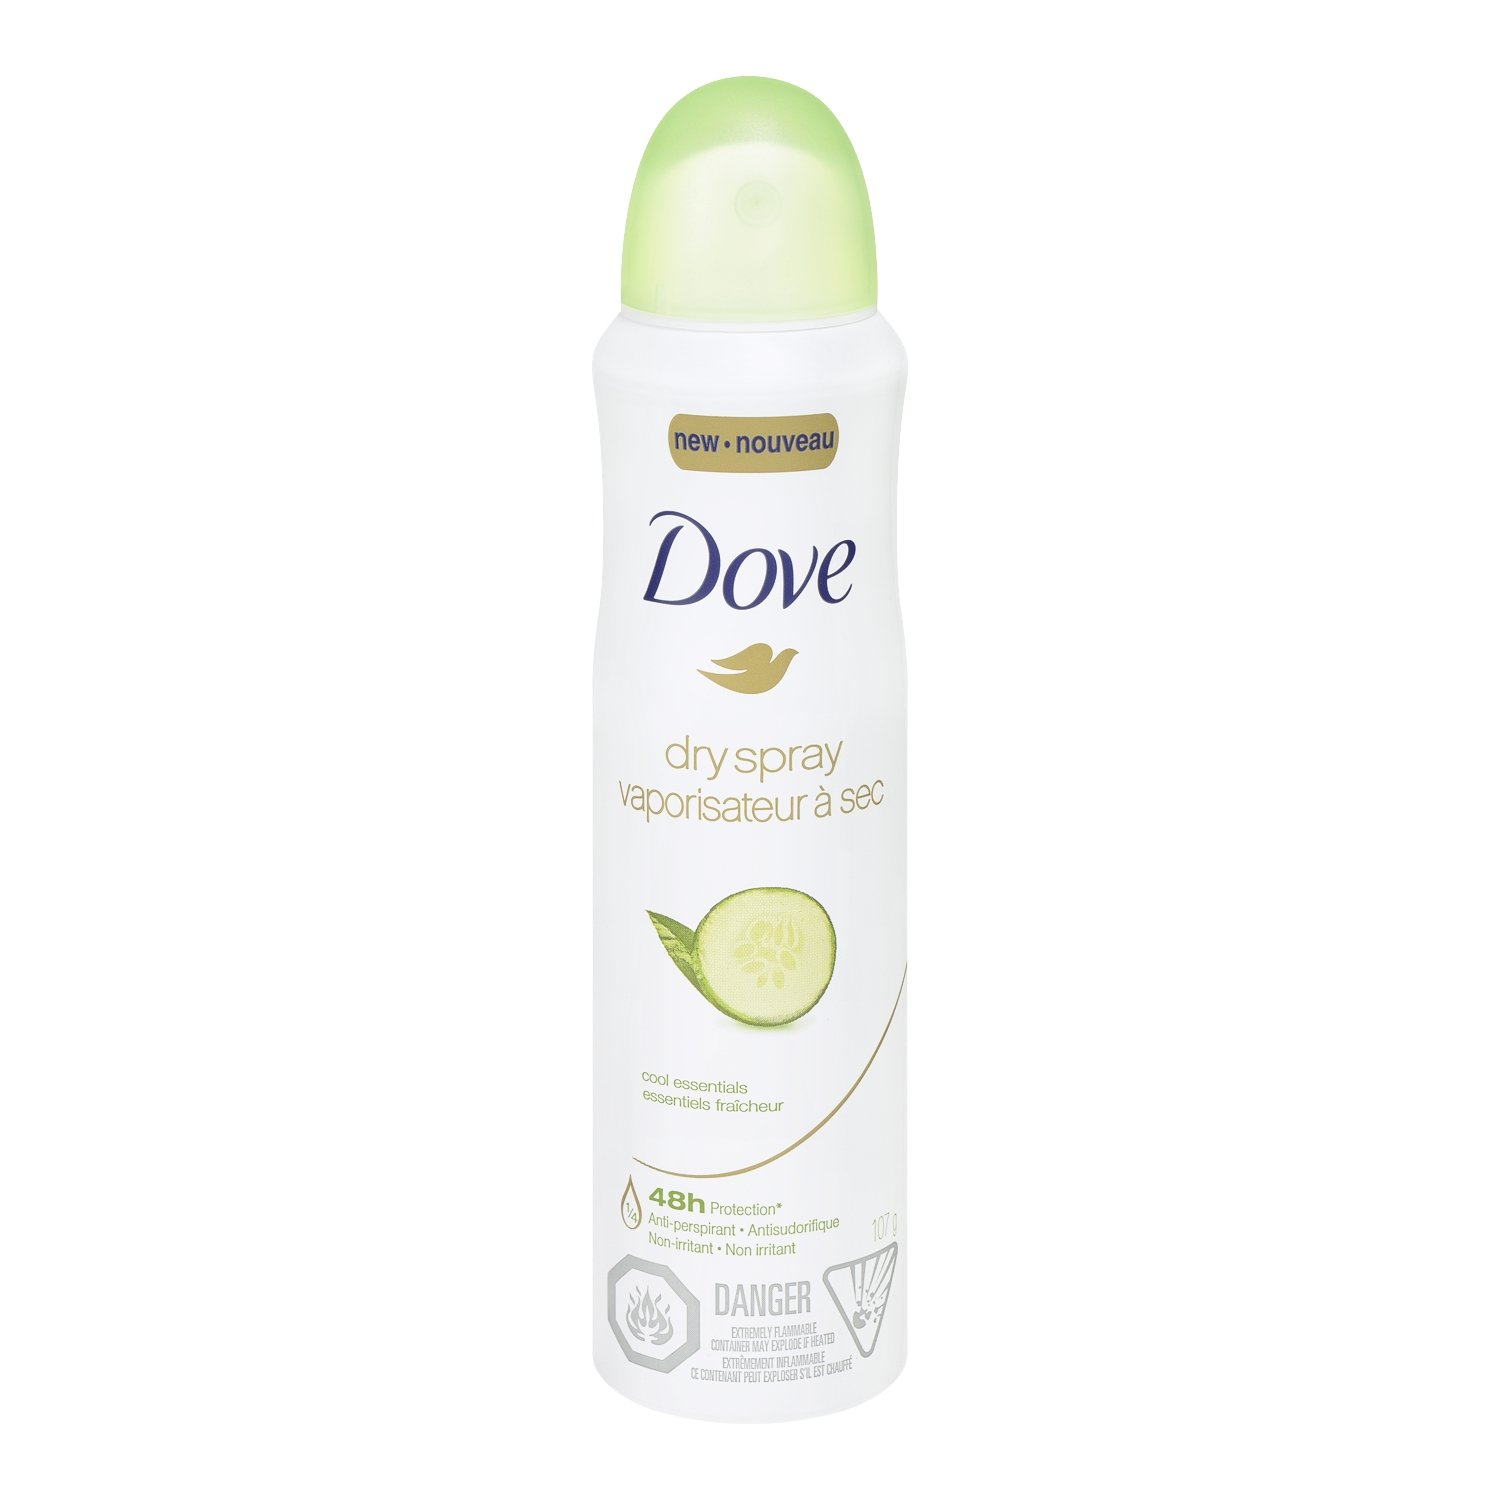 Dove Cool Essentials Dry Spray Antiperspirant 107g Unilever CA